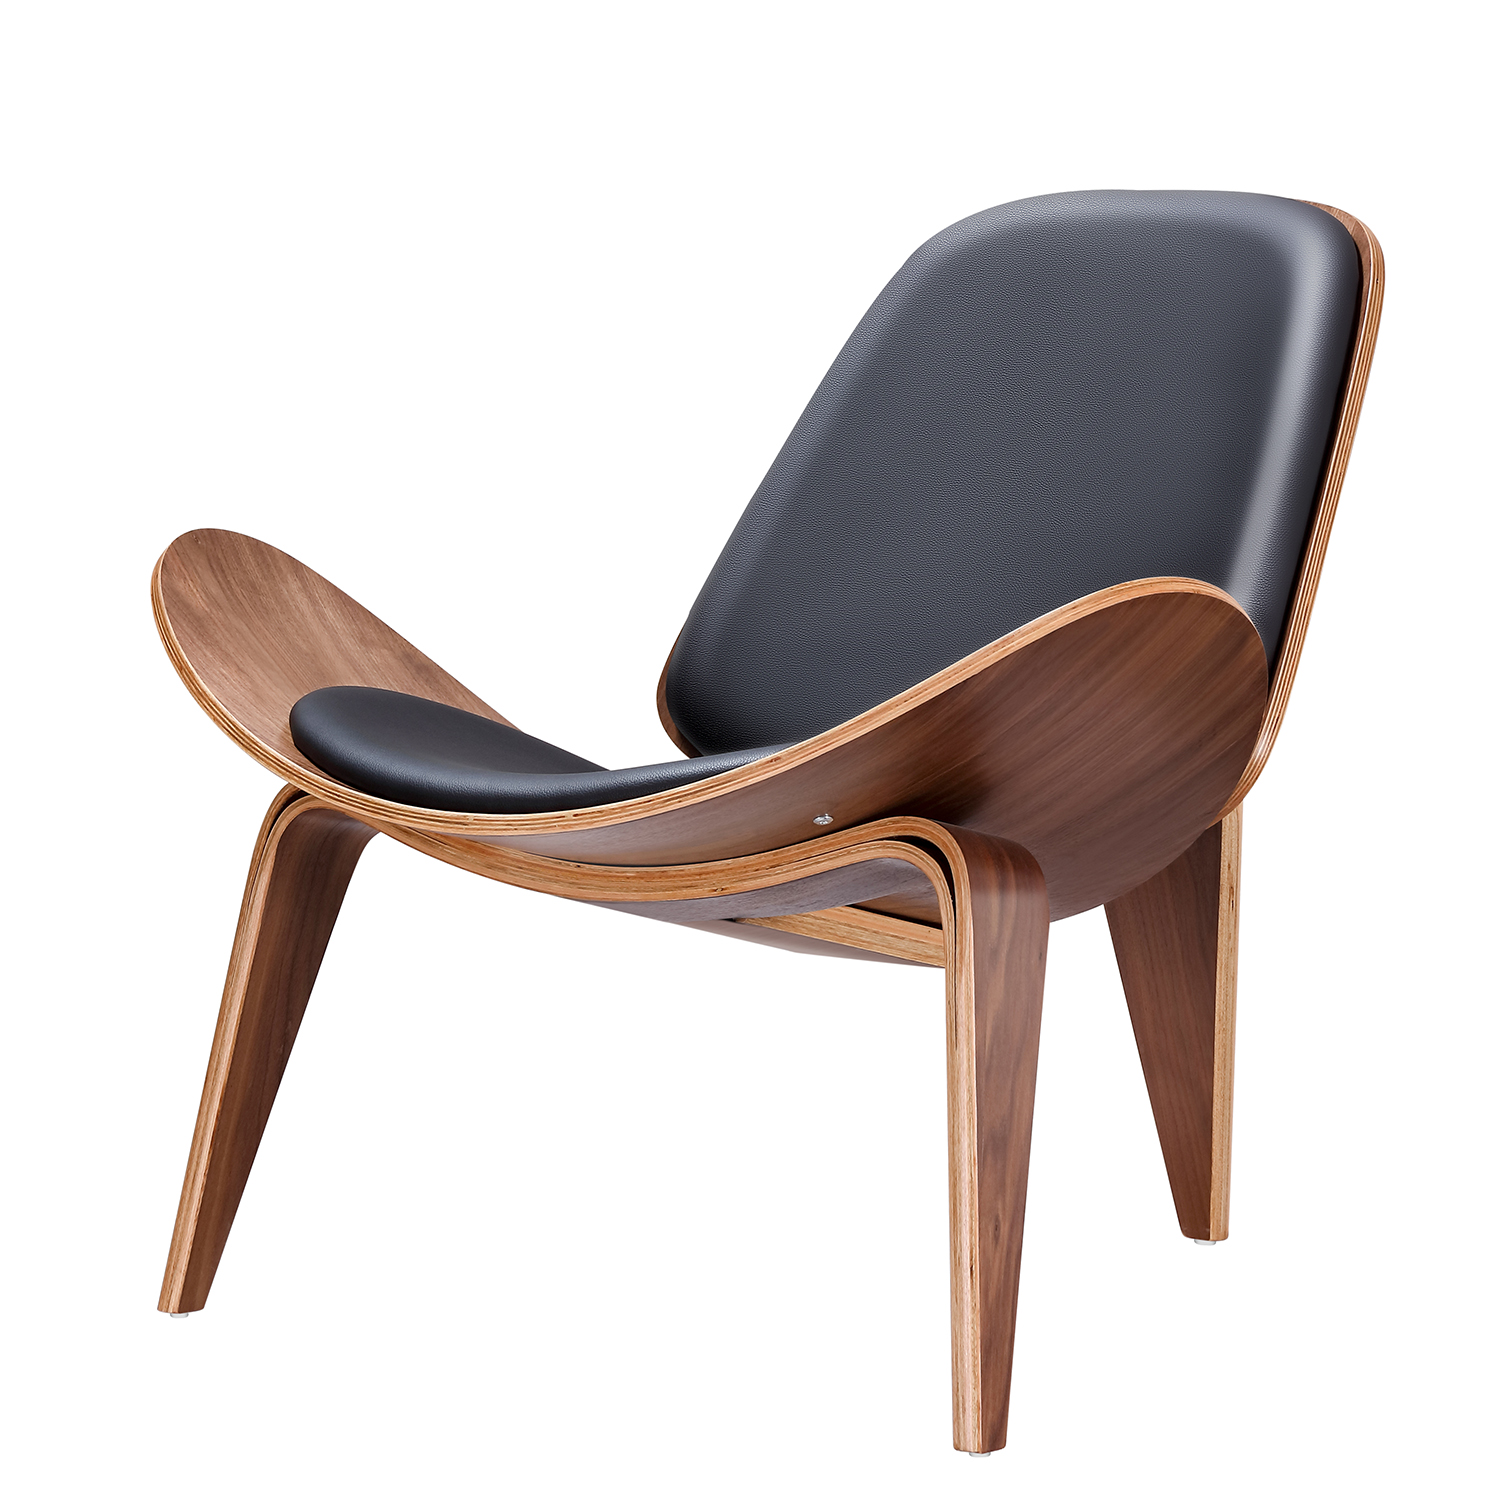 Mid Century Lounge Chair Replica Shell Chair Modern Tripod Plywood Lounge Chair 3 Wood Colors with Black Leather Chairs